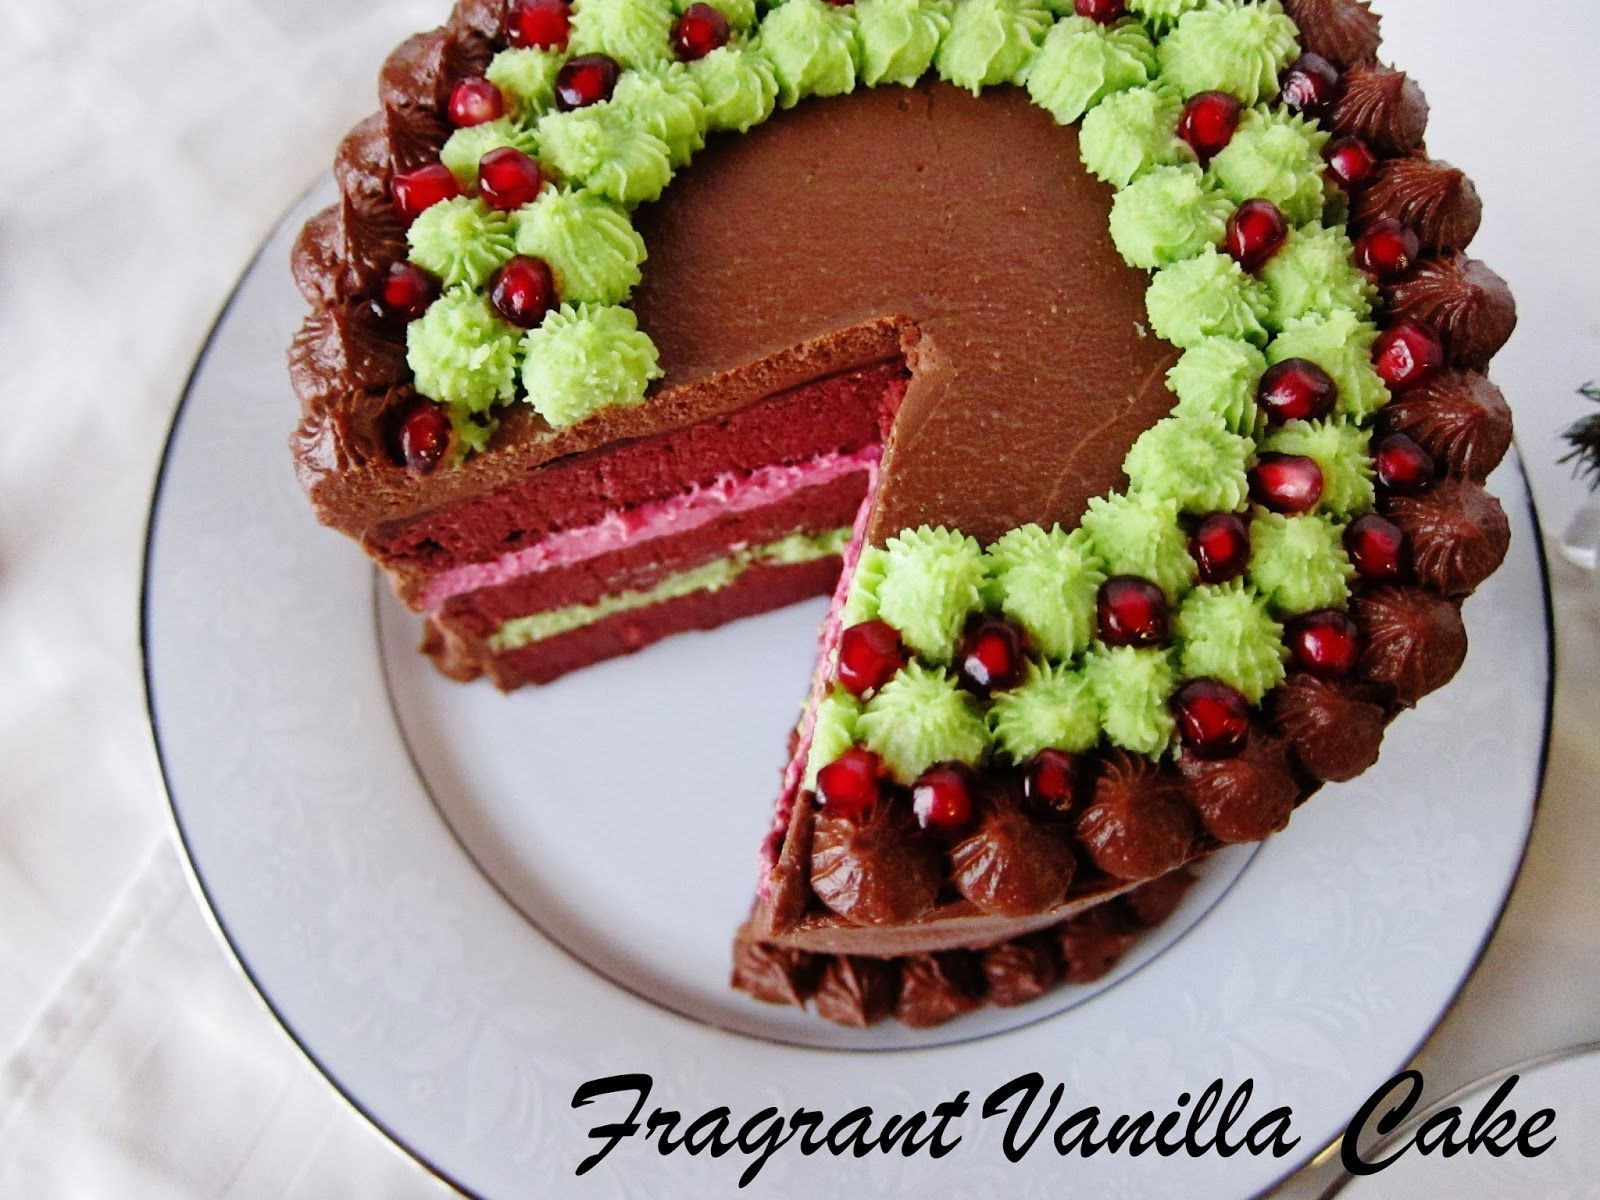 Raw Chocolate Mint Layer Cake from Fragrant Vanilla Cake